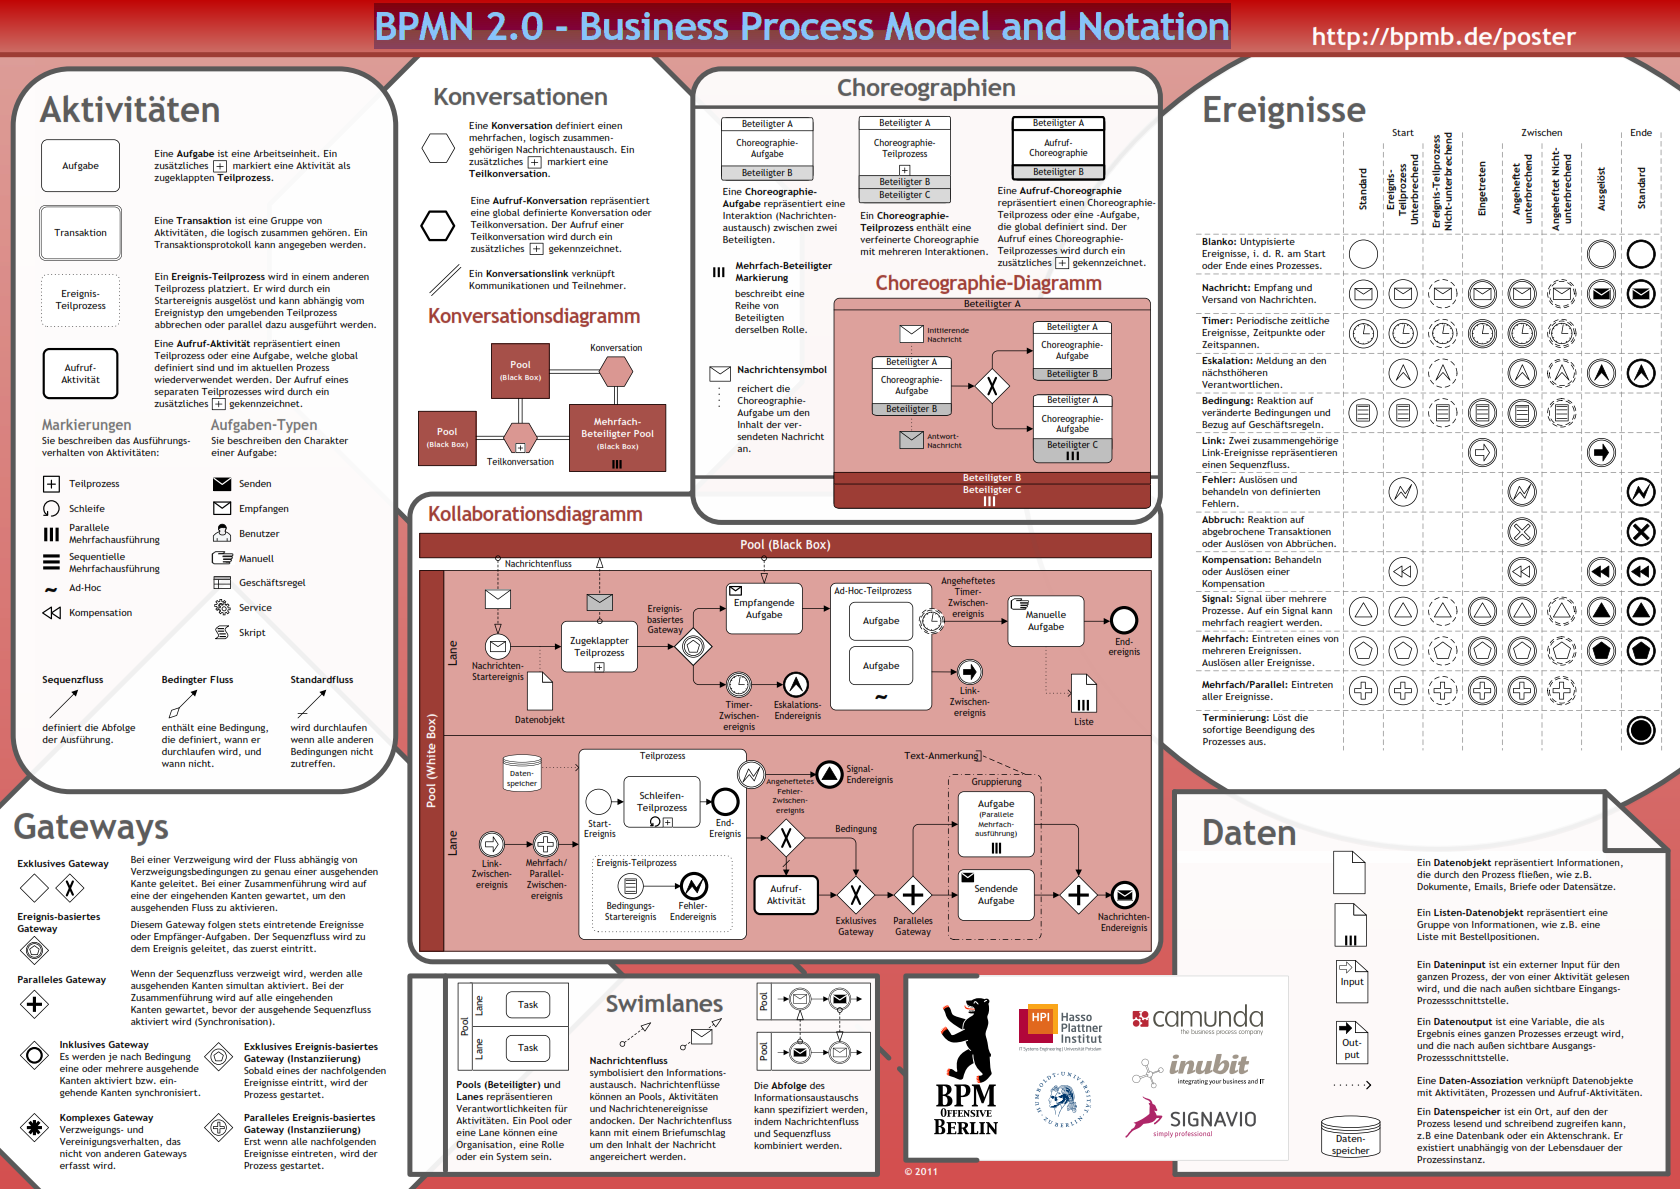 BPMN 2.0 - Business Process Model and Notation (Poster)